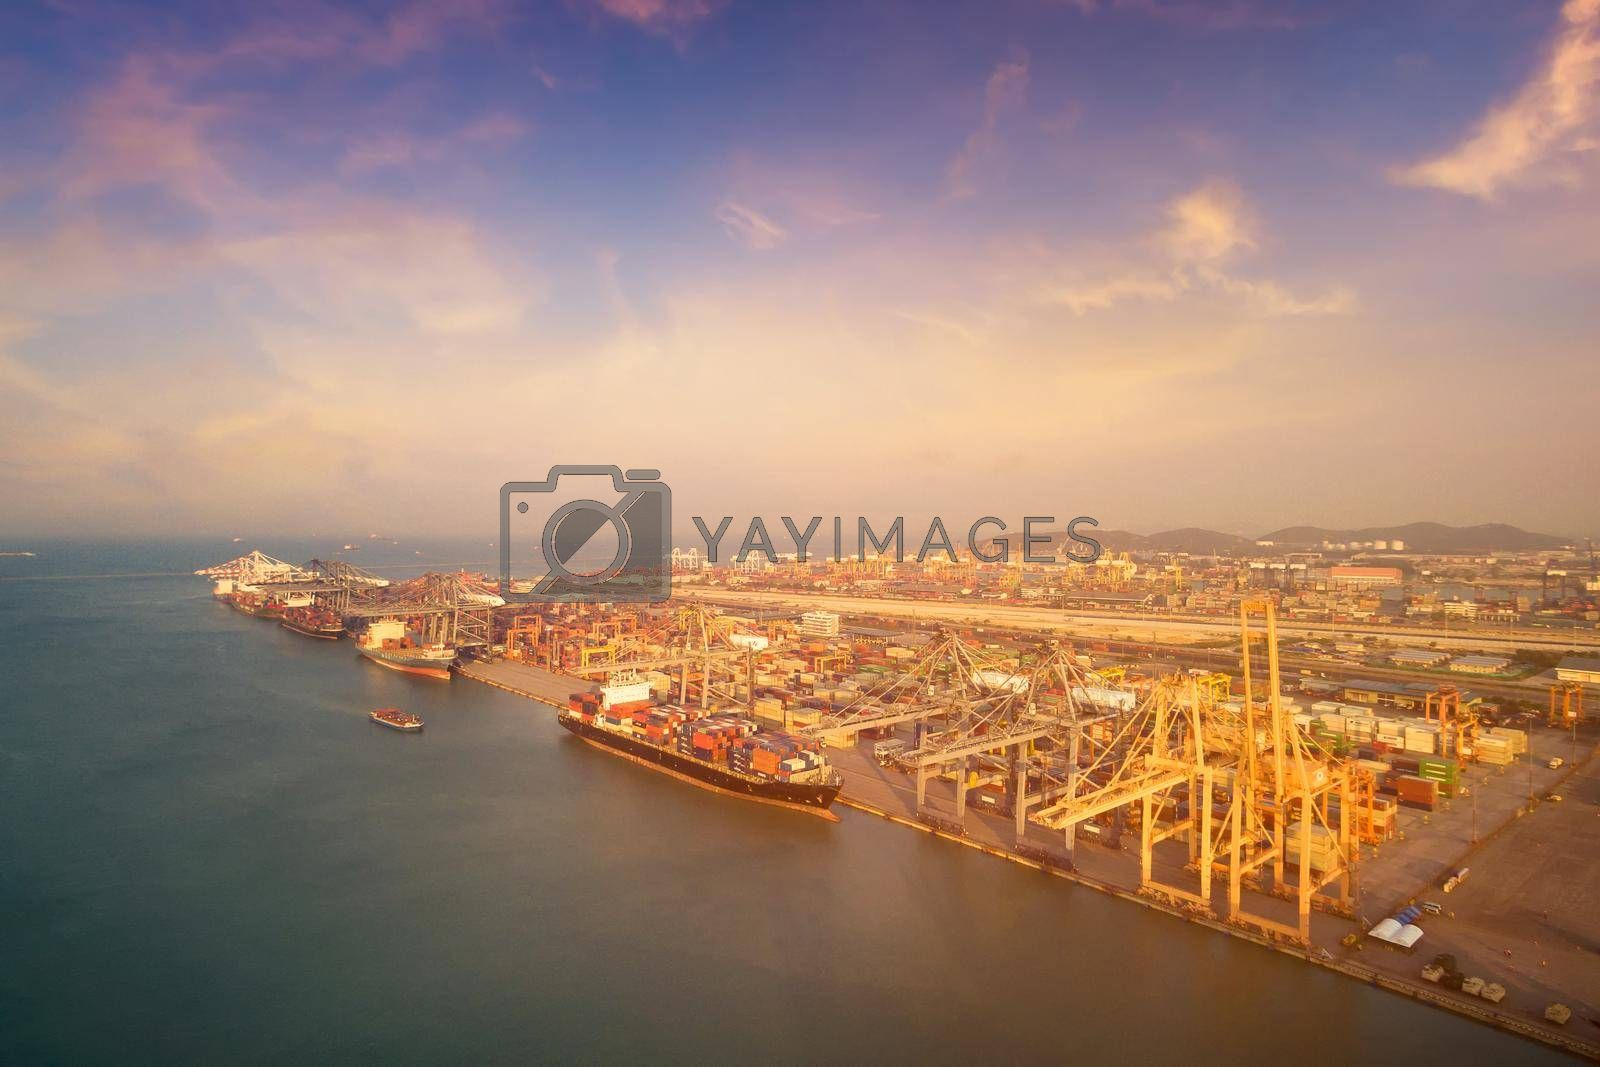 Large container shipping boat at shipping yard main transportation of cargo container shipping. Photo concept for Global business containers shipping,Logistic,Import and Export industry